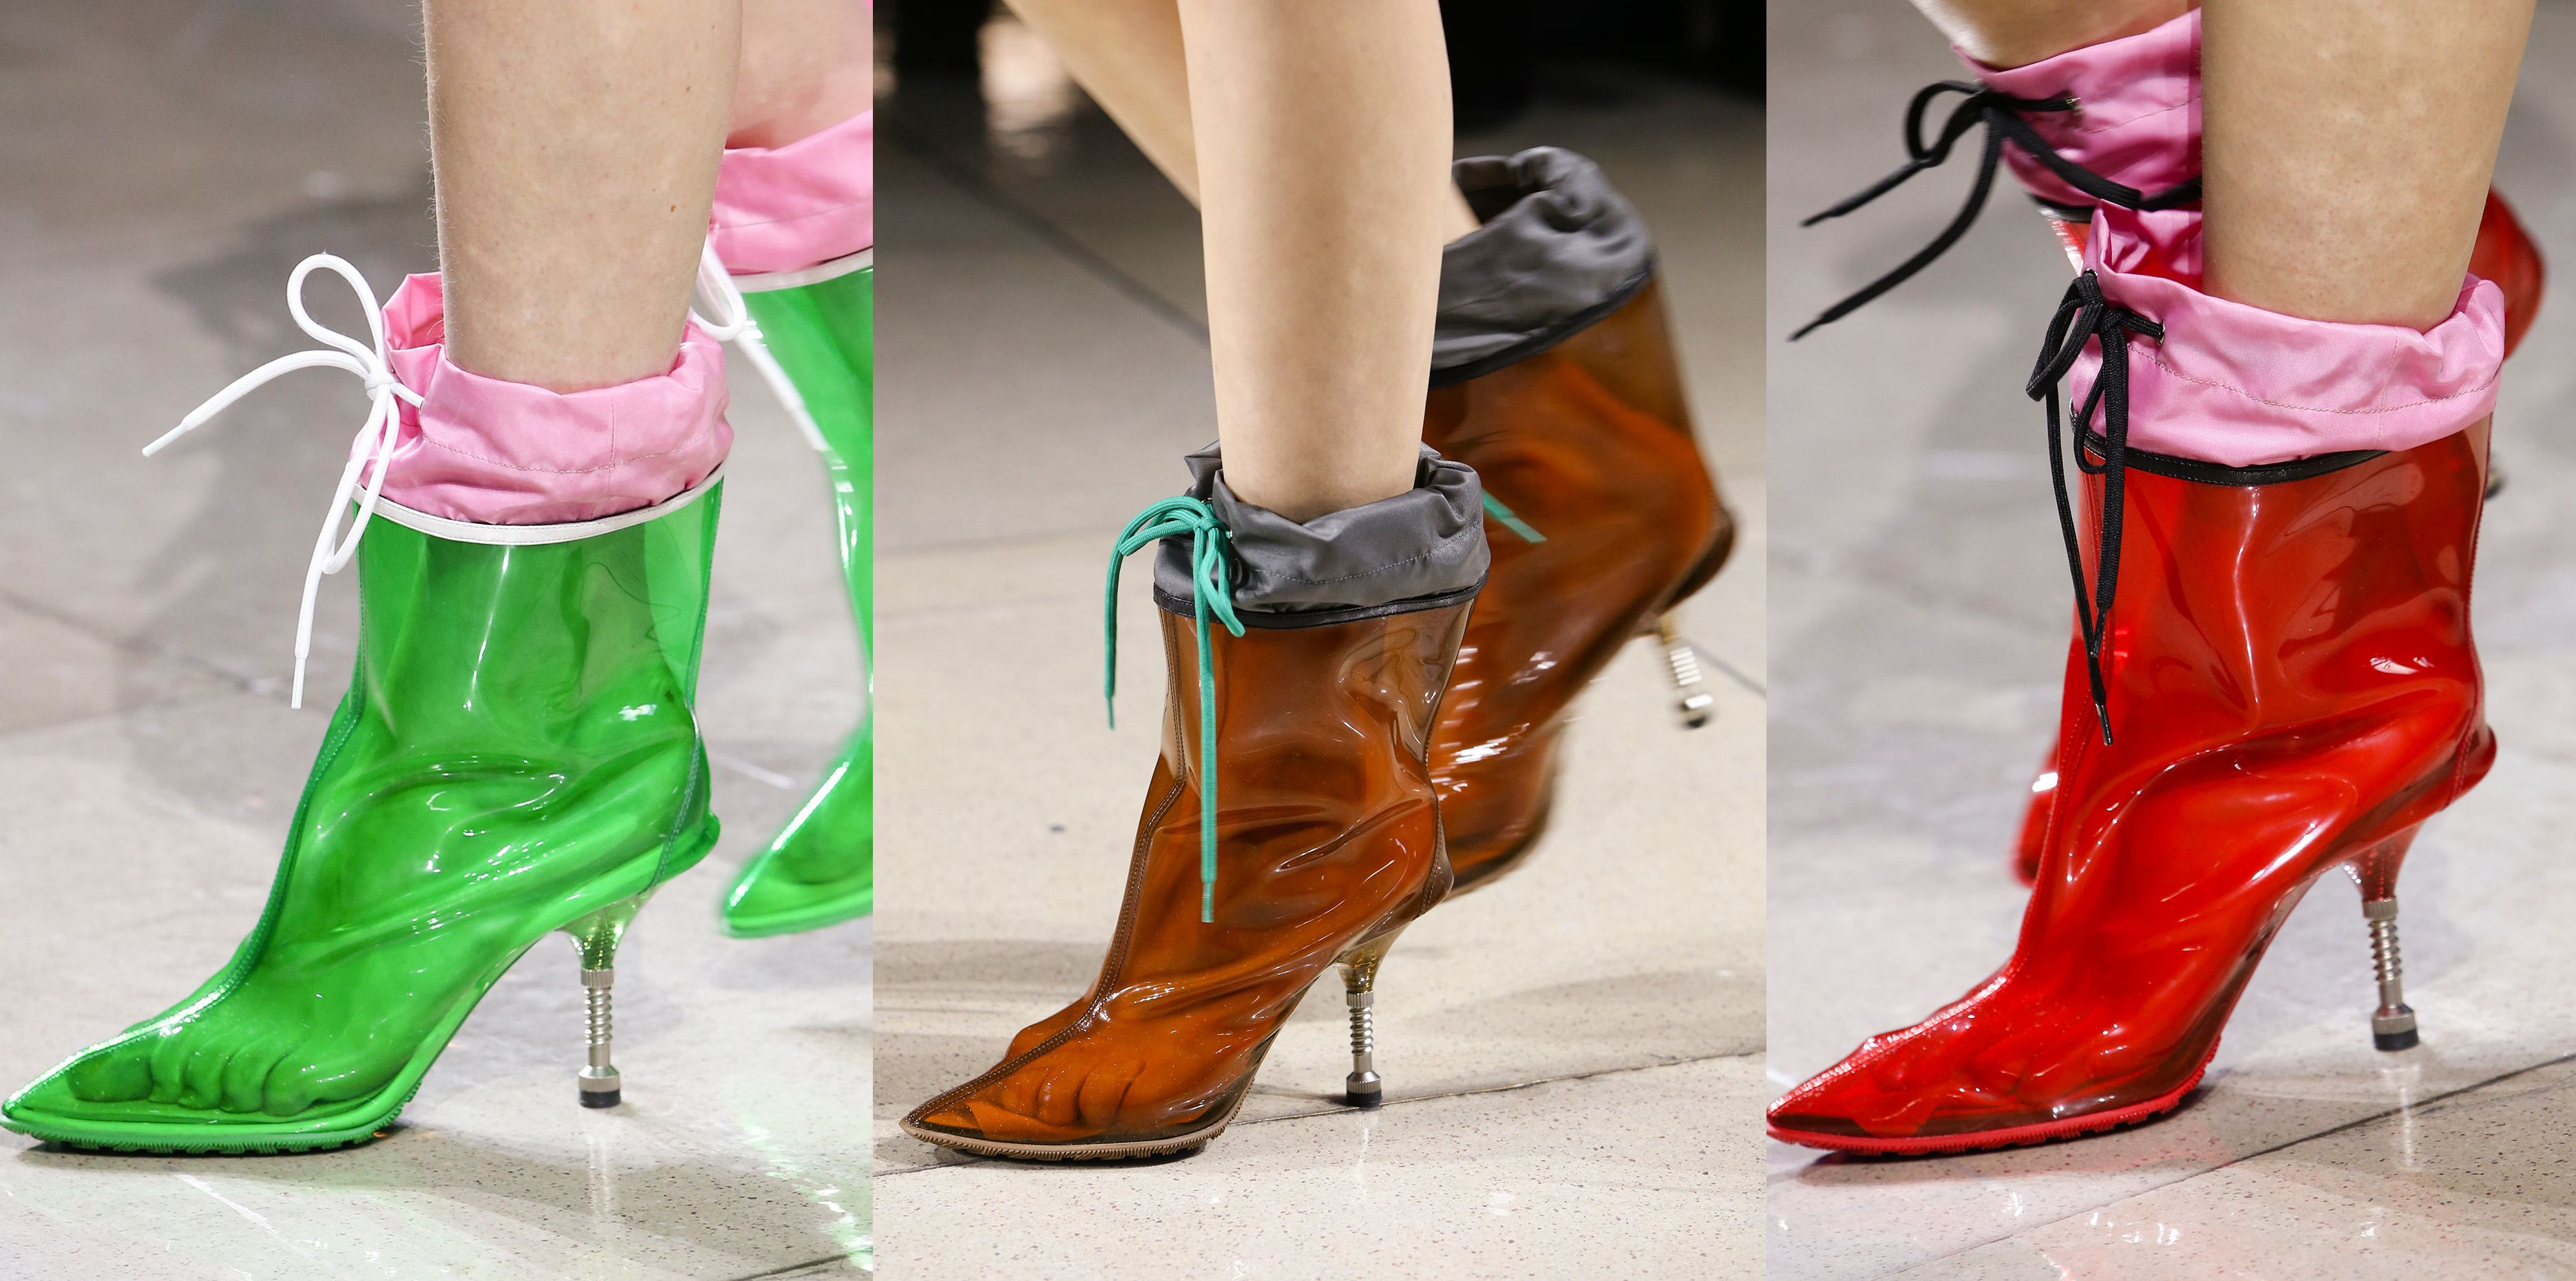 Obsessed with Miu Miu FW14 rain boots with wind-breaker sock: want